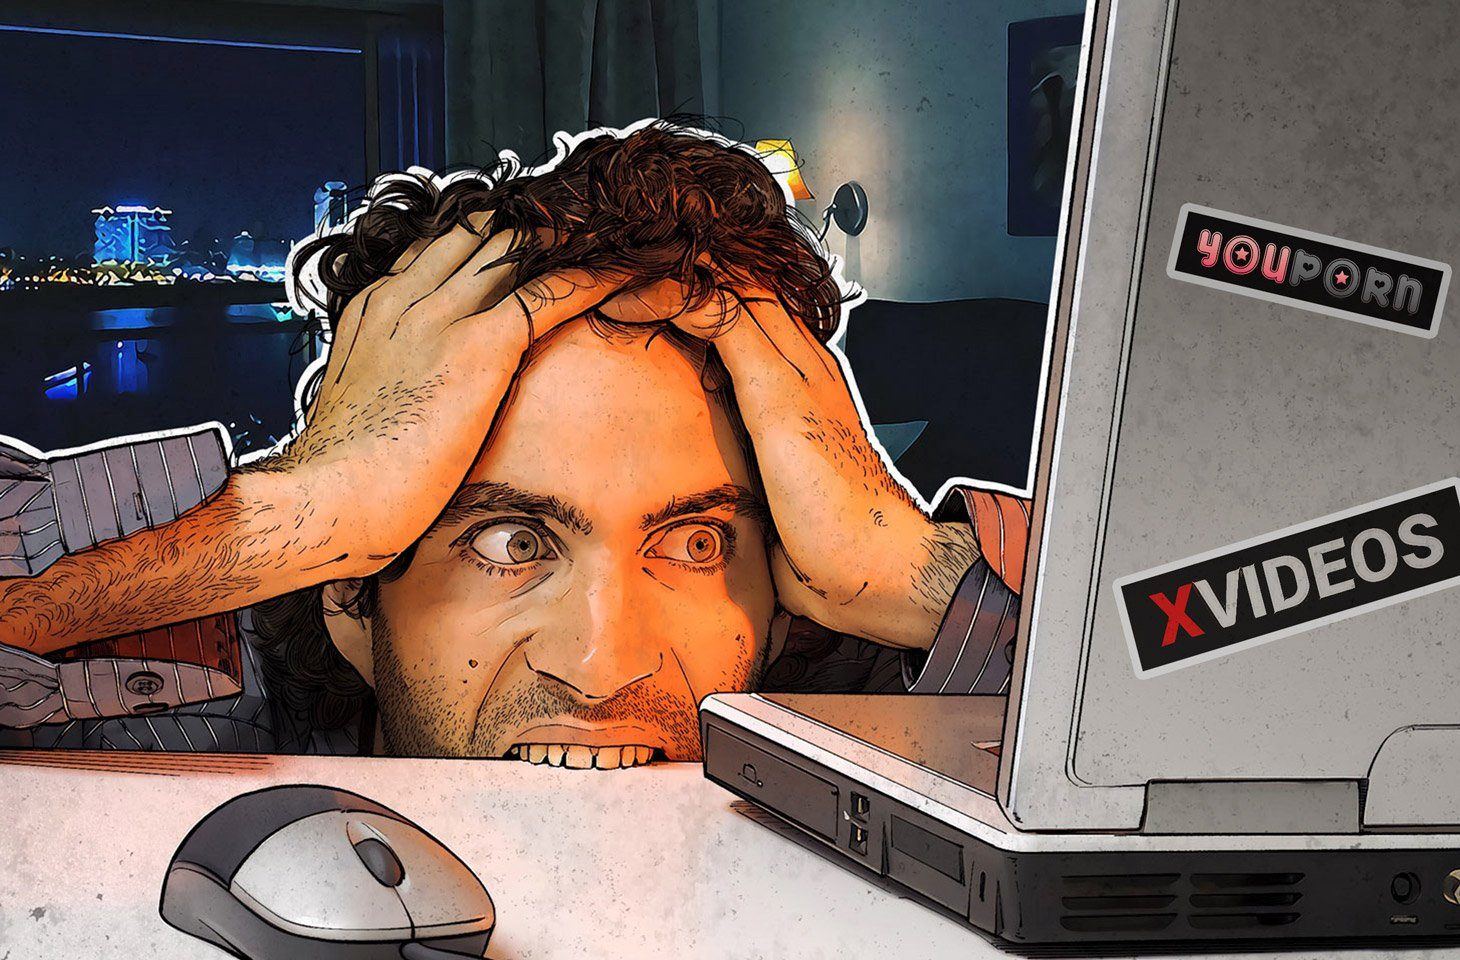 Blackmail demand spam Extortion Featured Image